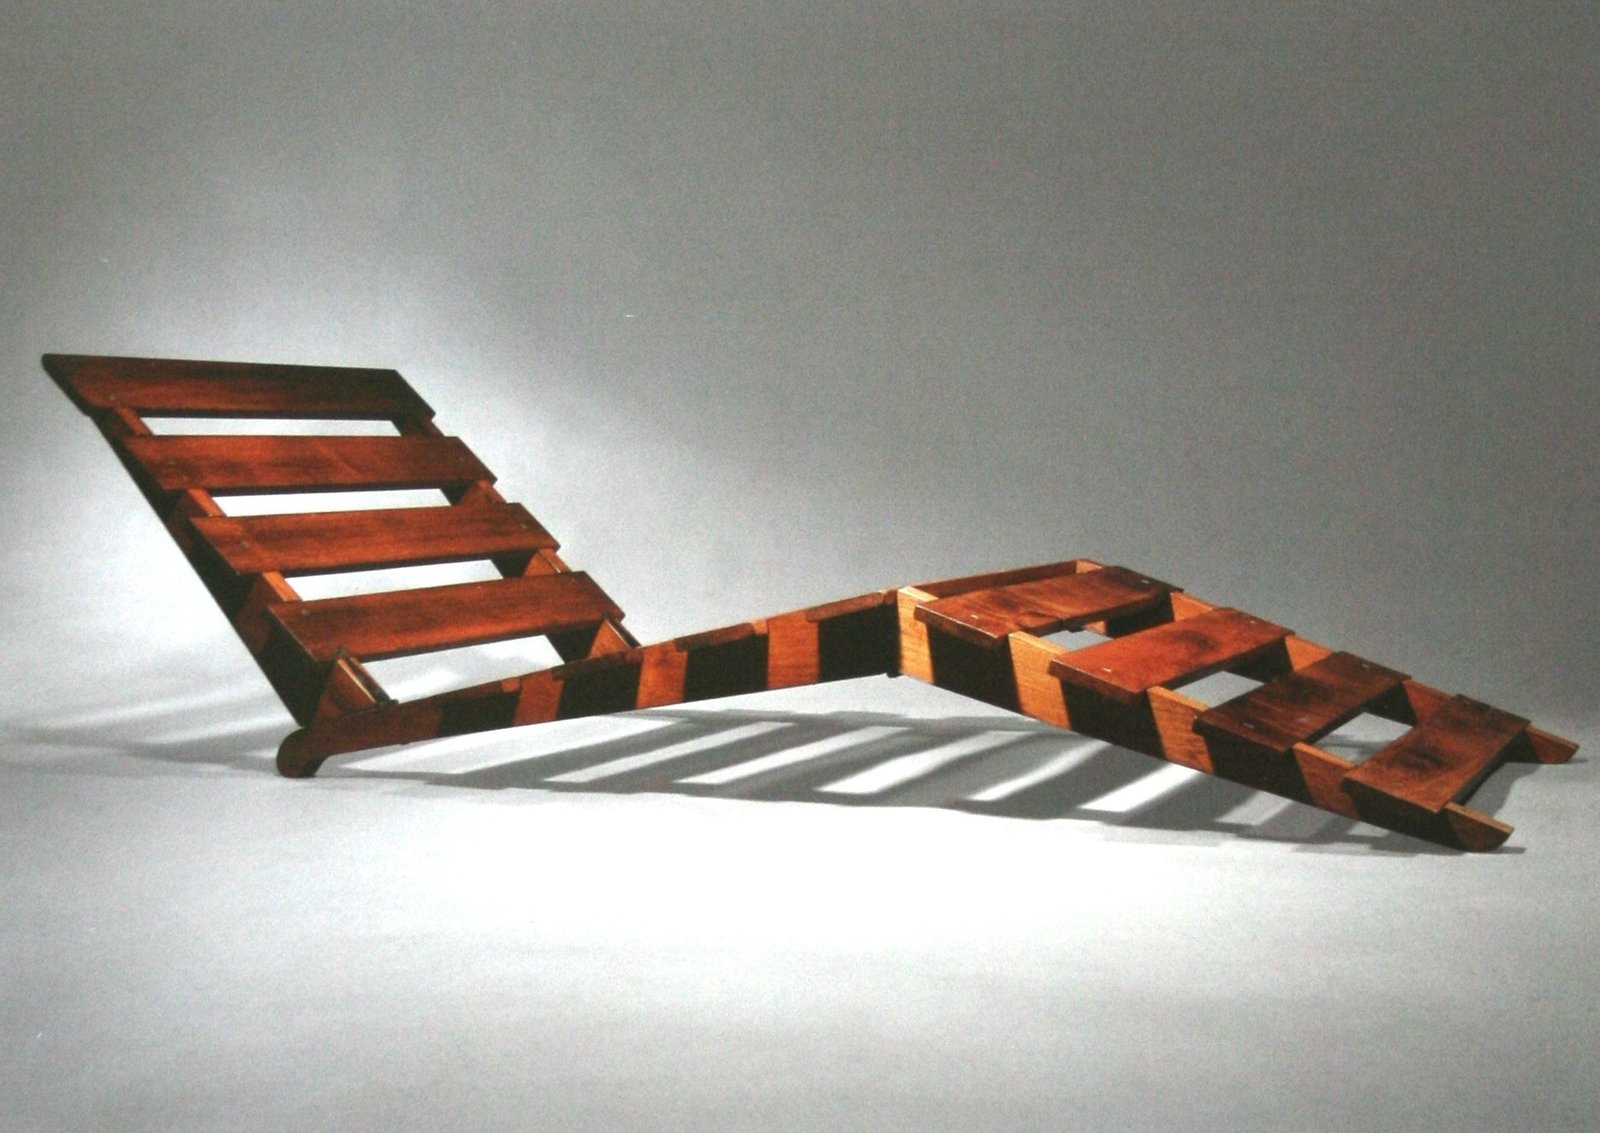 Folding wood chaise longue, 1939  Independent works of Charlotte Perriand